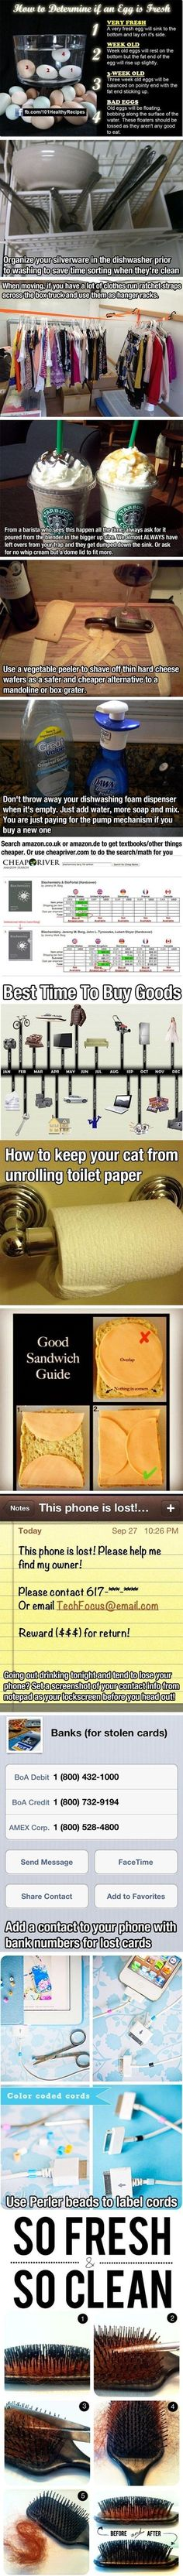 Just some life hacks  - funny pictures #funnypictures